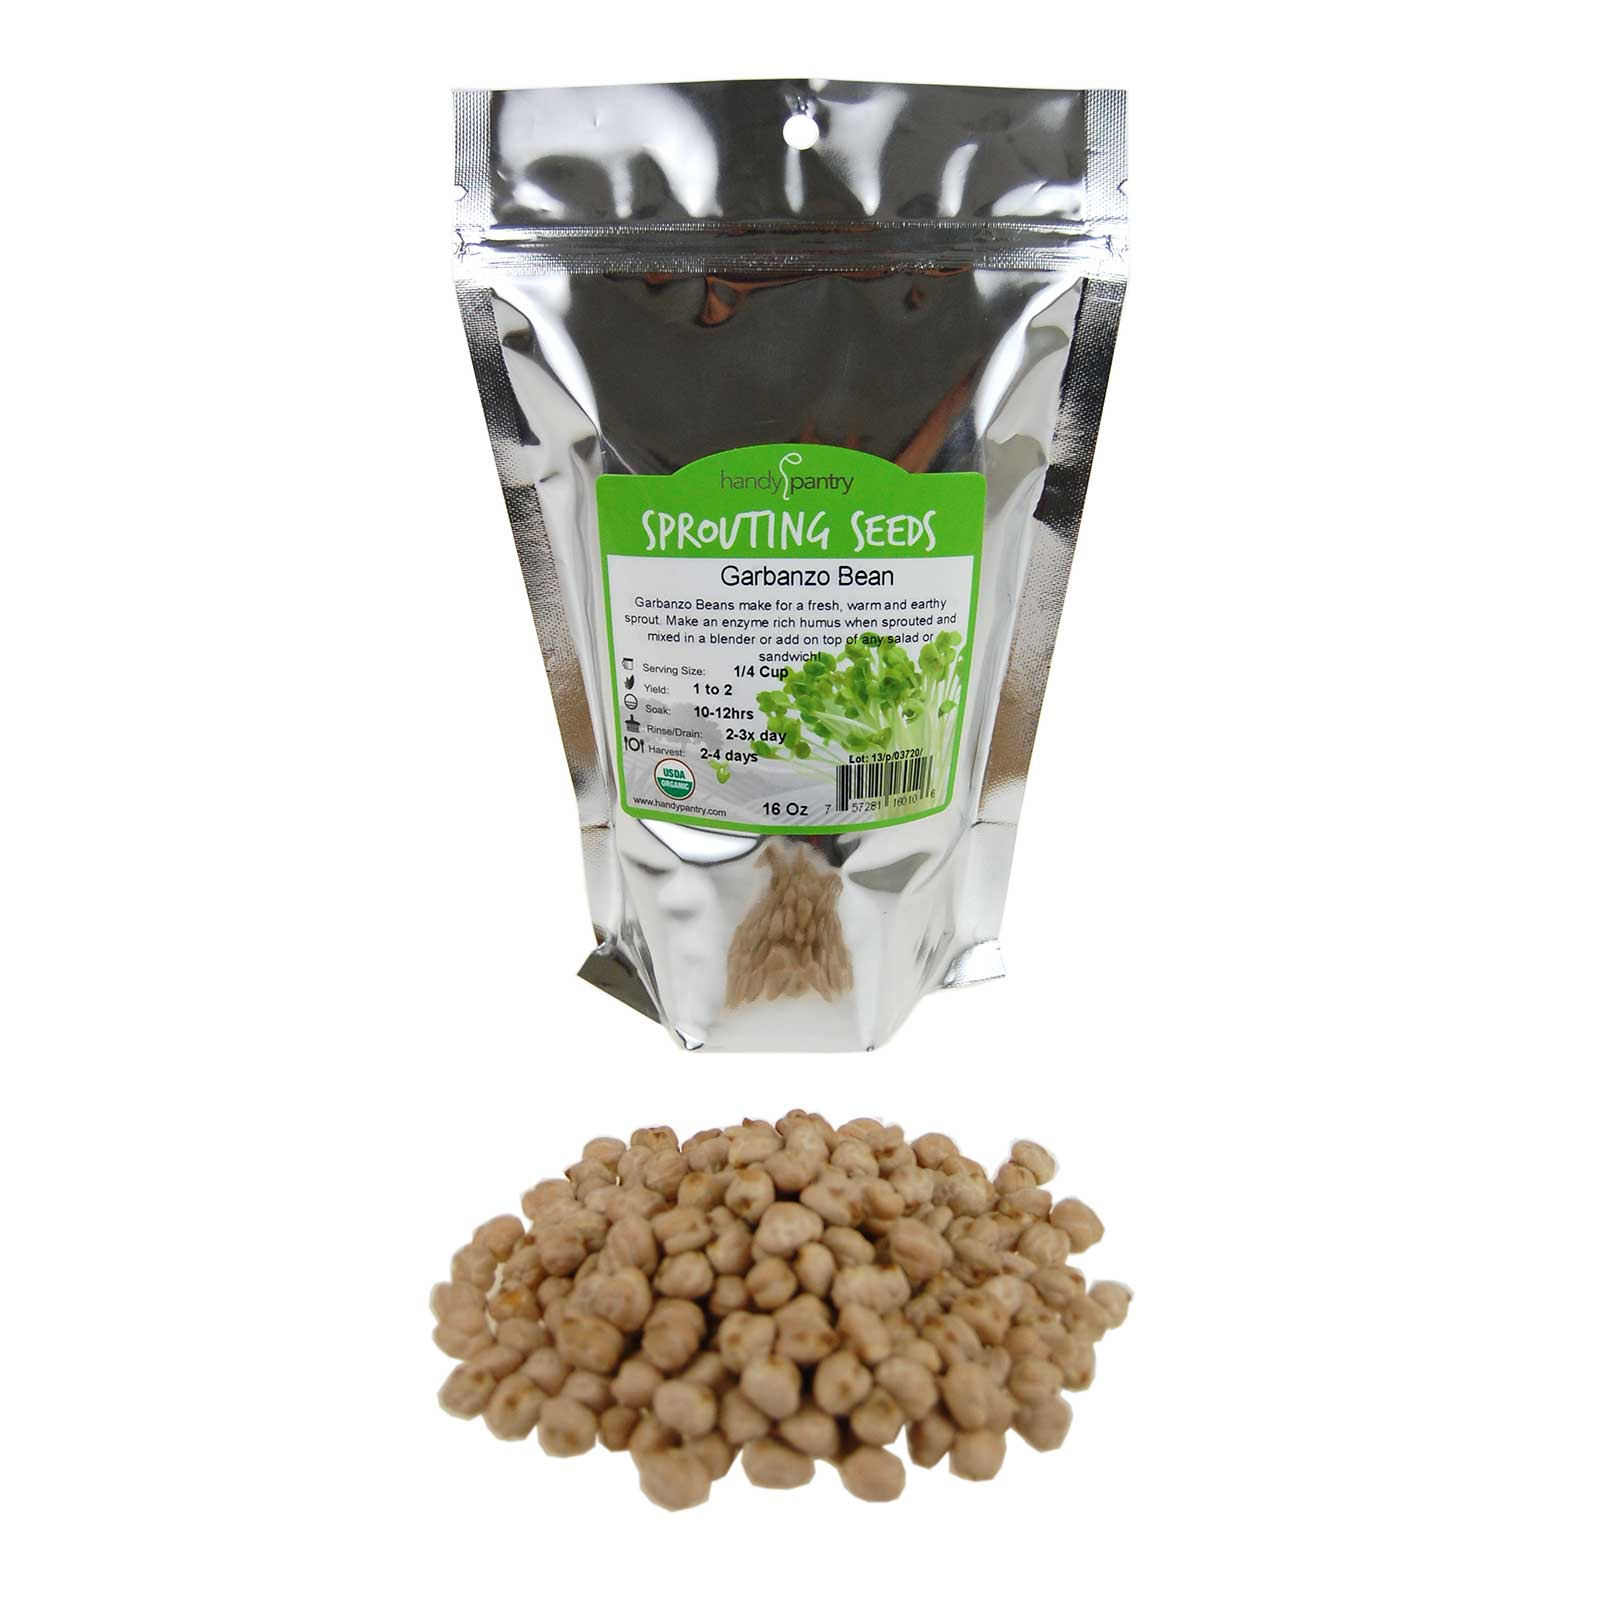 Dried Garbanzo Beans- Organic Sprouting Seeds 1 Lbs Handy Pantry Brand Dry Garbonzo Bean   Seeds For Planting, Gardening, Hummus, Cooking,... by Handy Pantry